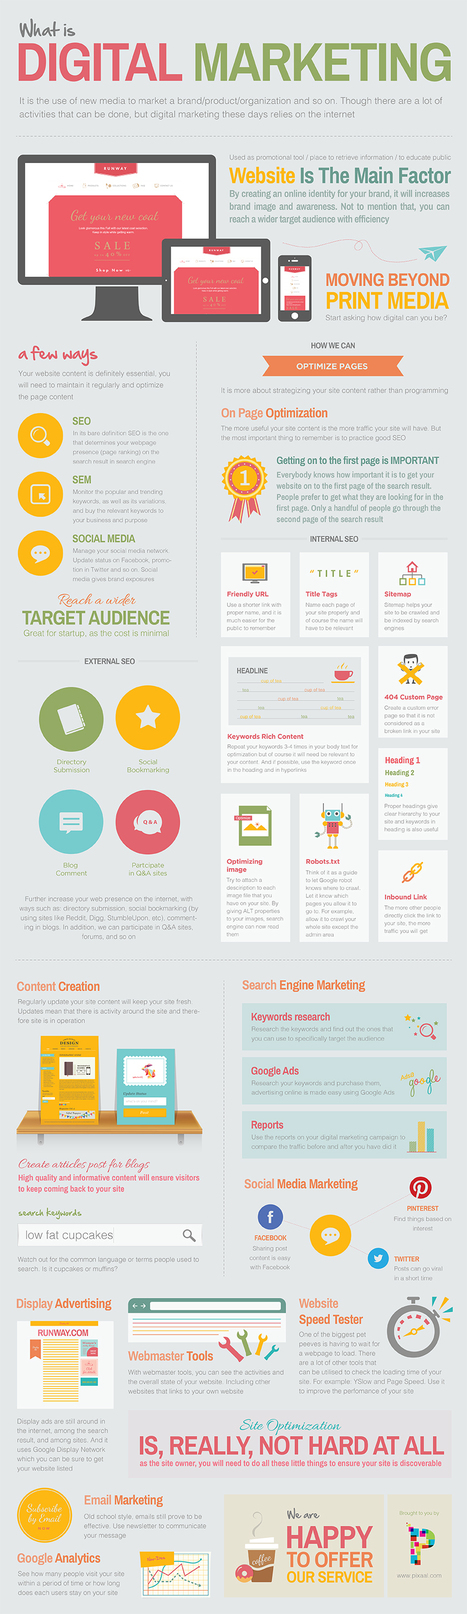 The Ultimate Guide To Understanding Digital Marketing [Infographic] | International Business Development | Scoop.it